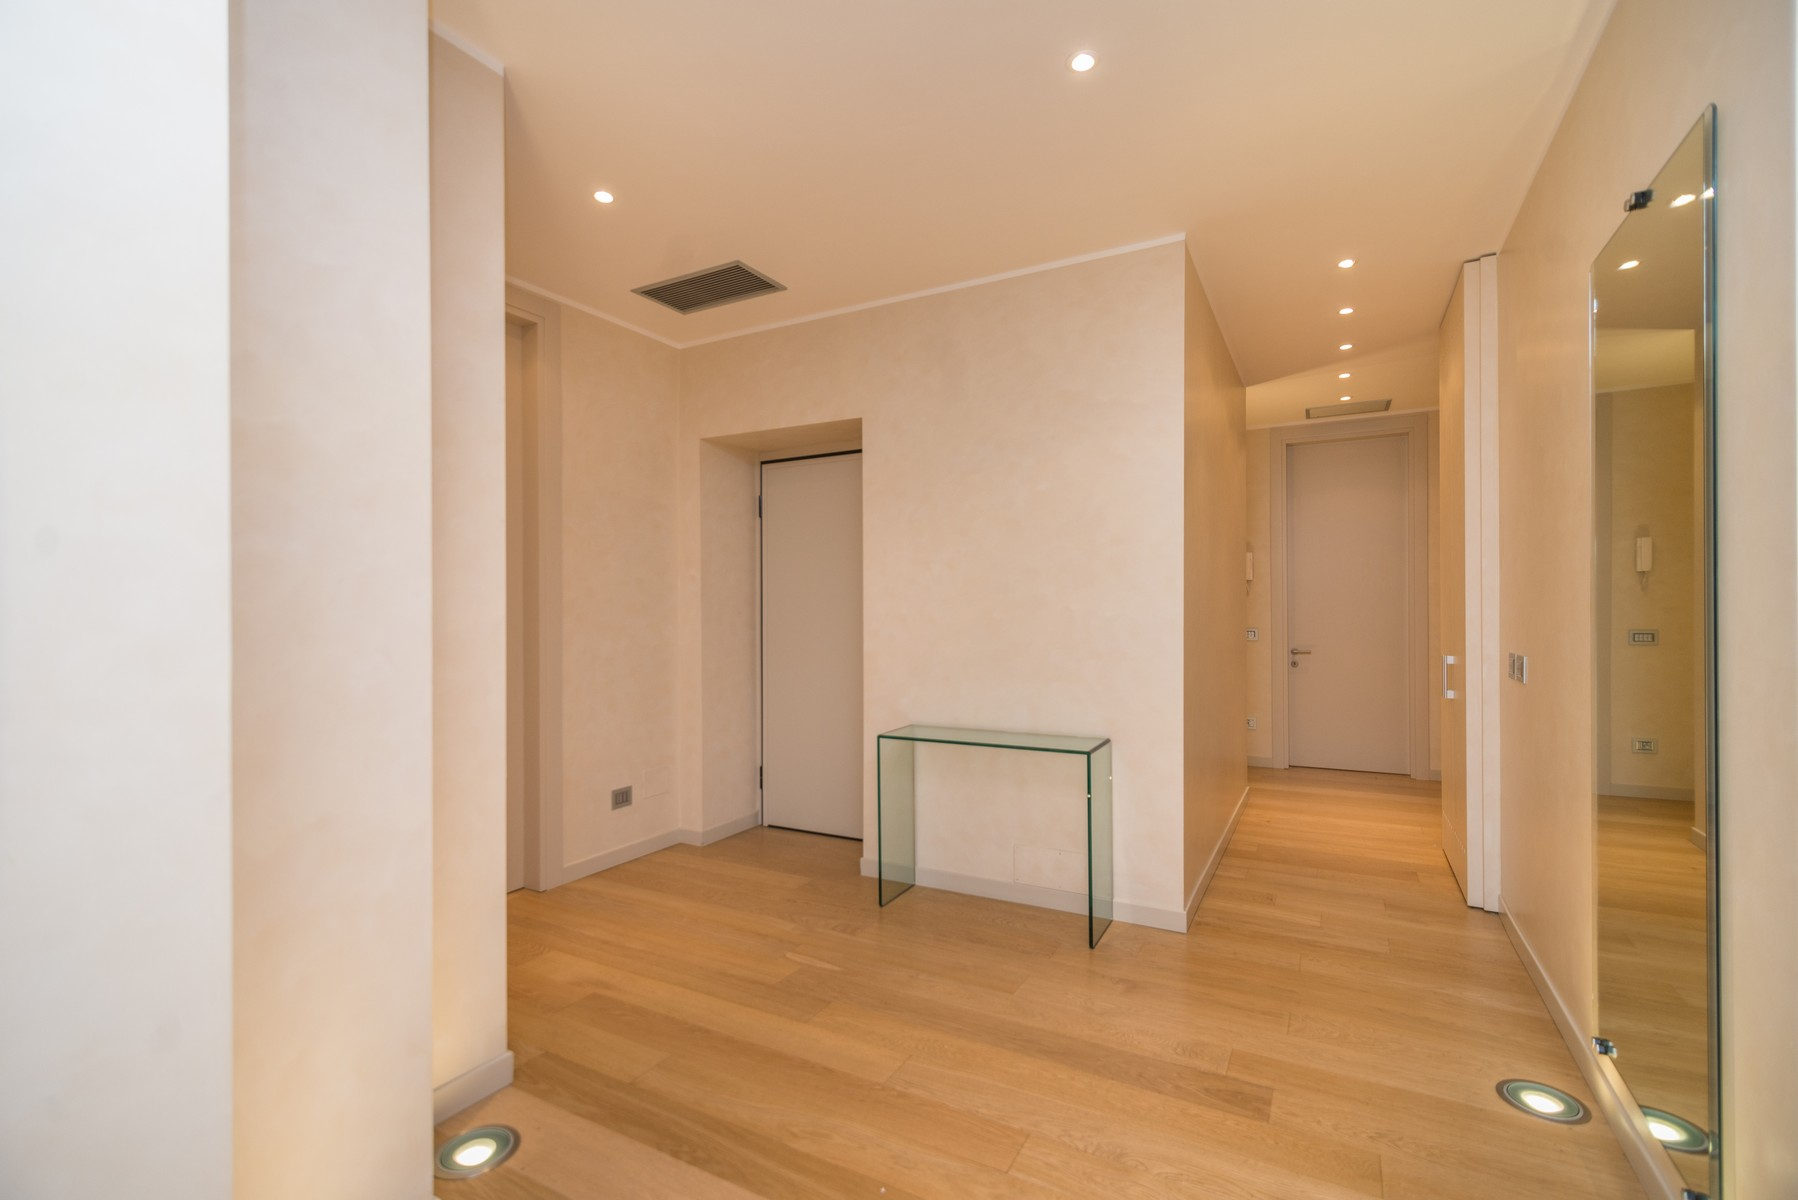 Additional photo for property listing at Elegant apartment in historic Palazzo Corso Venezia Milano, Milan 20121 Italy